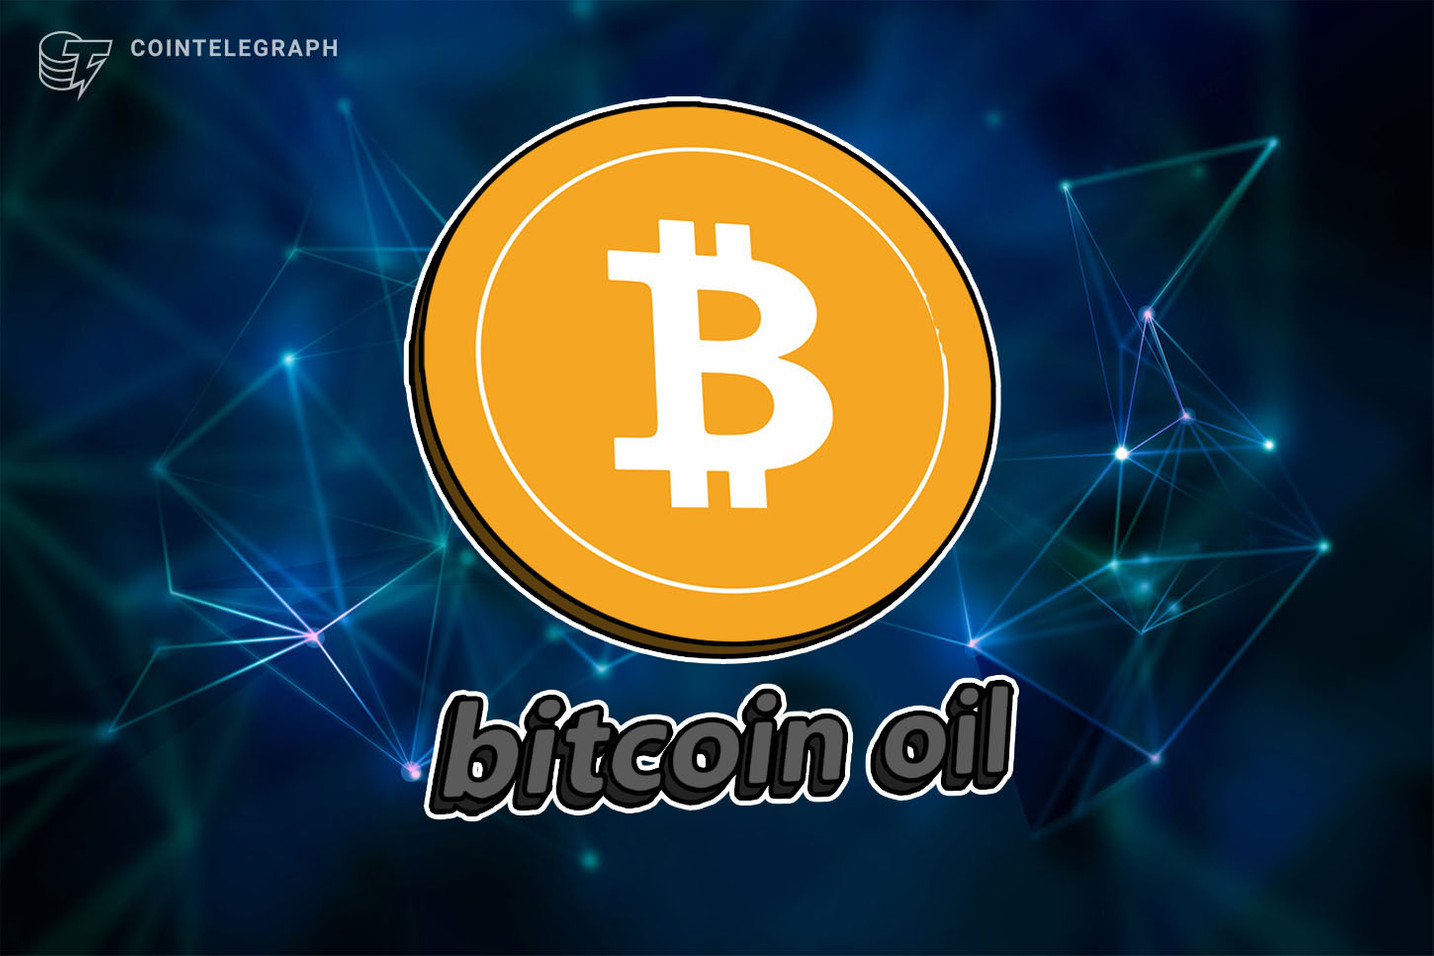 BitcoinOil Price Stability: Incentive-based Economy & Hodlers Rewards